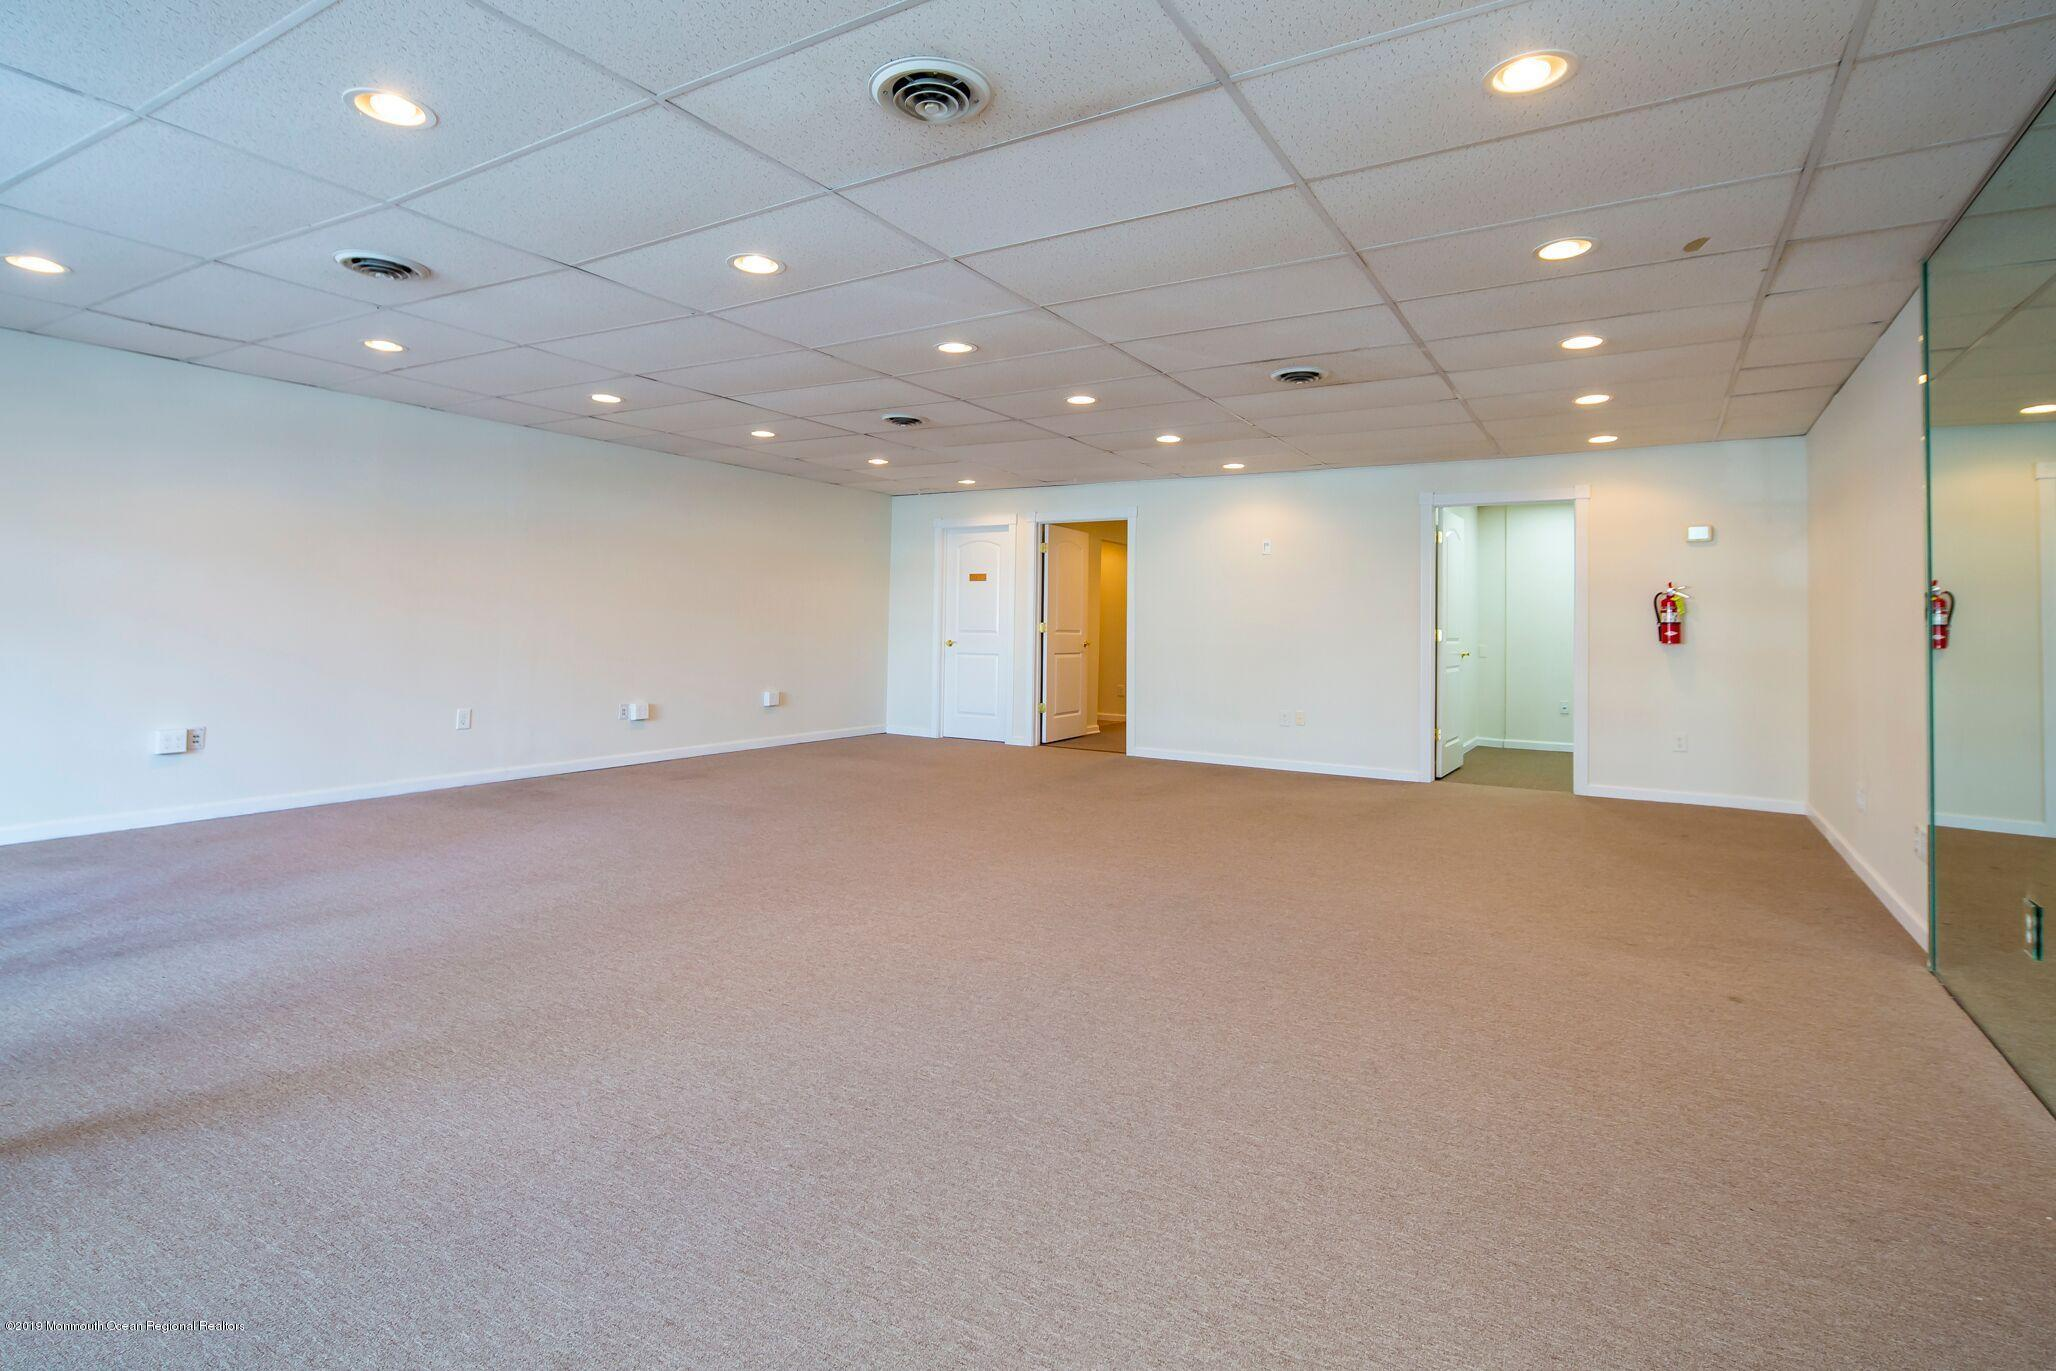 Location location! Awesome office space available one block from both Front and Broad! 1000 sf of pristine space with bathroom. Parking lot for tenants of the building.